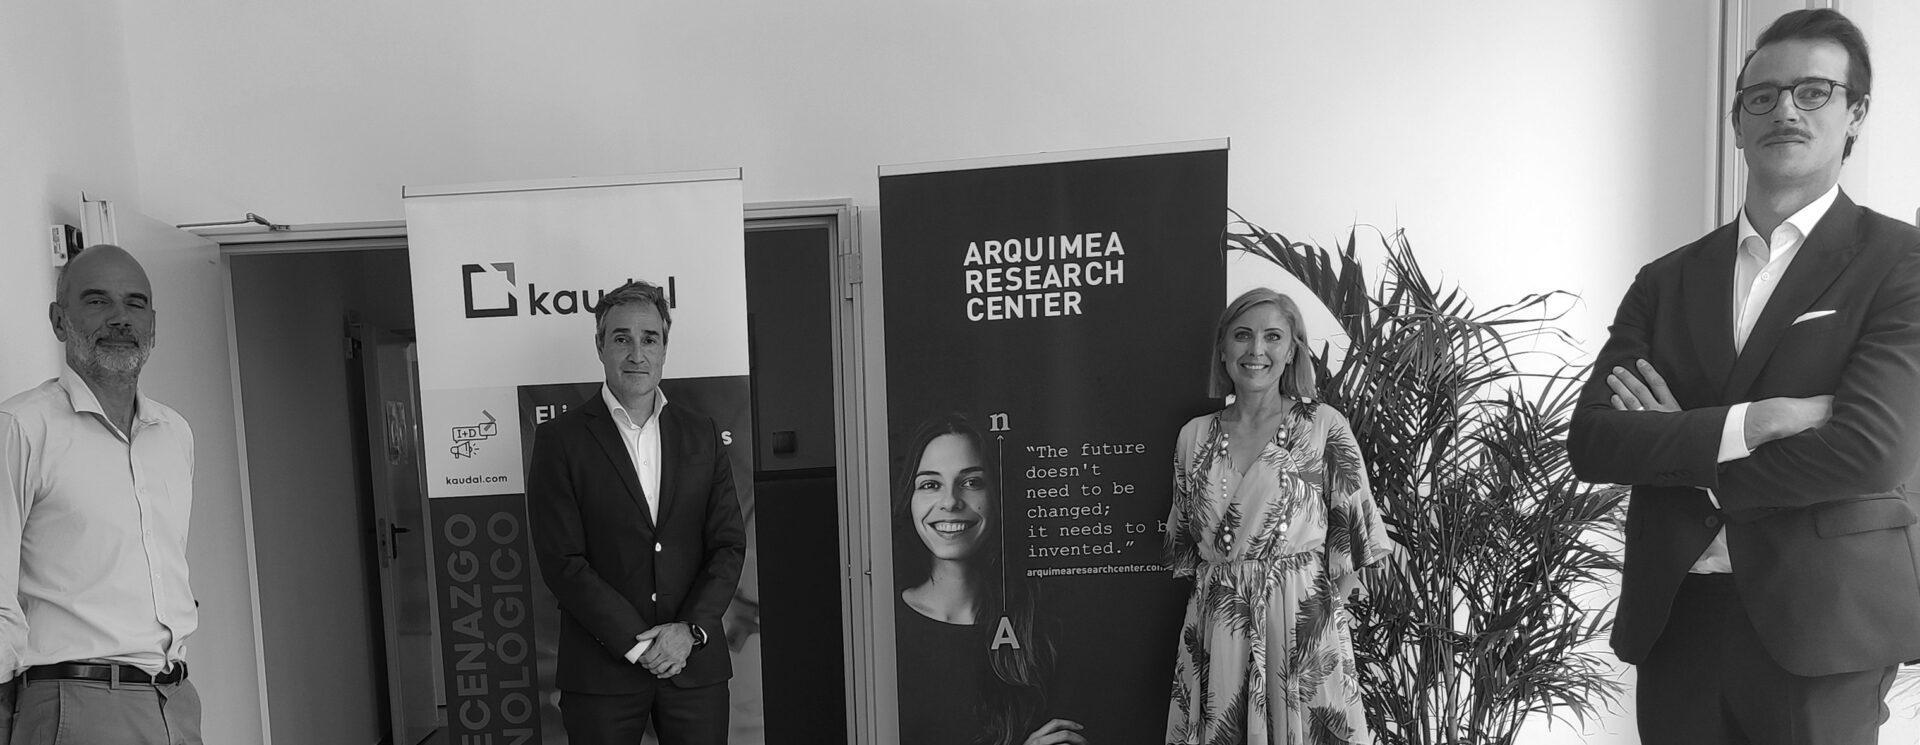 ARQUIMEA Research Center, Kaudal and the Universidad Europea de Canarias promote the development of R+D projects